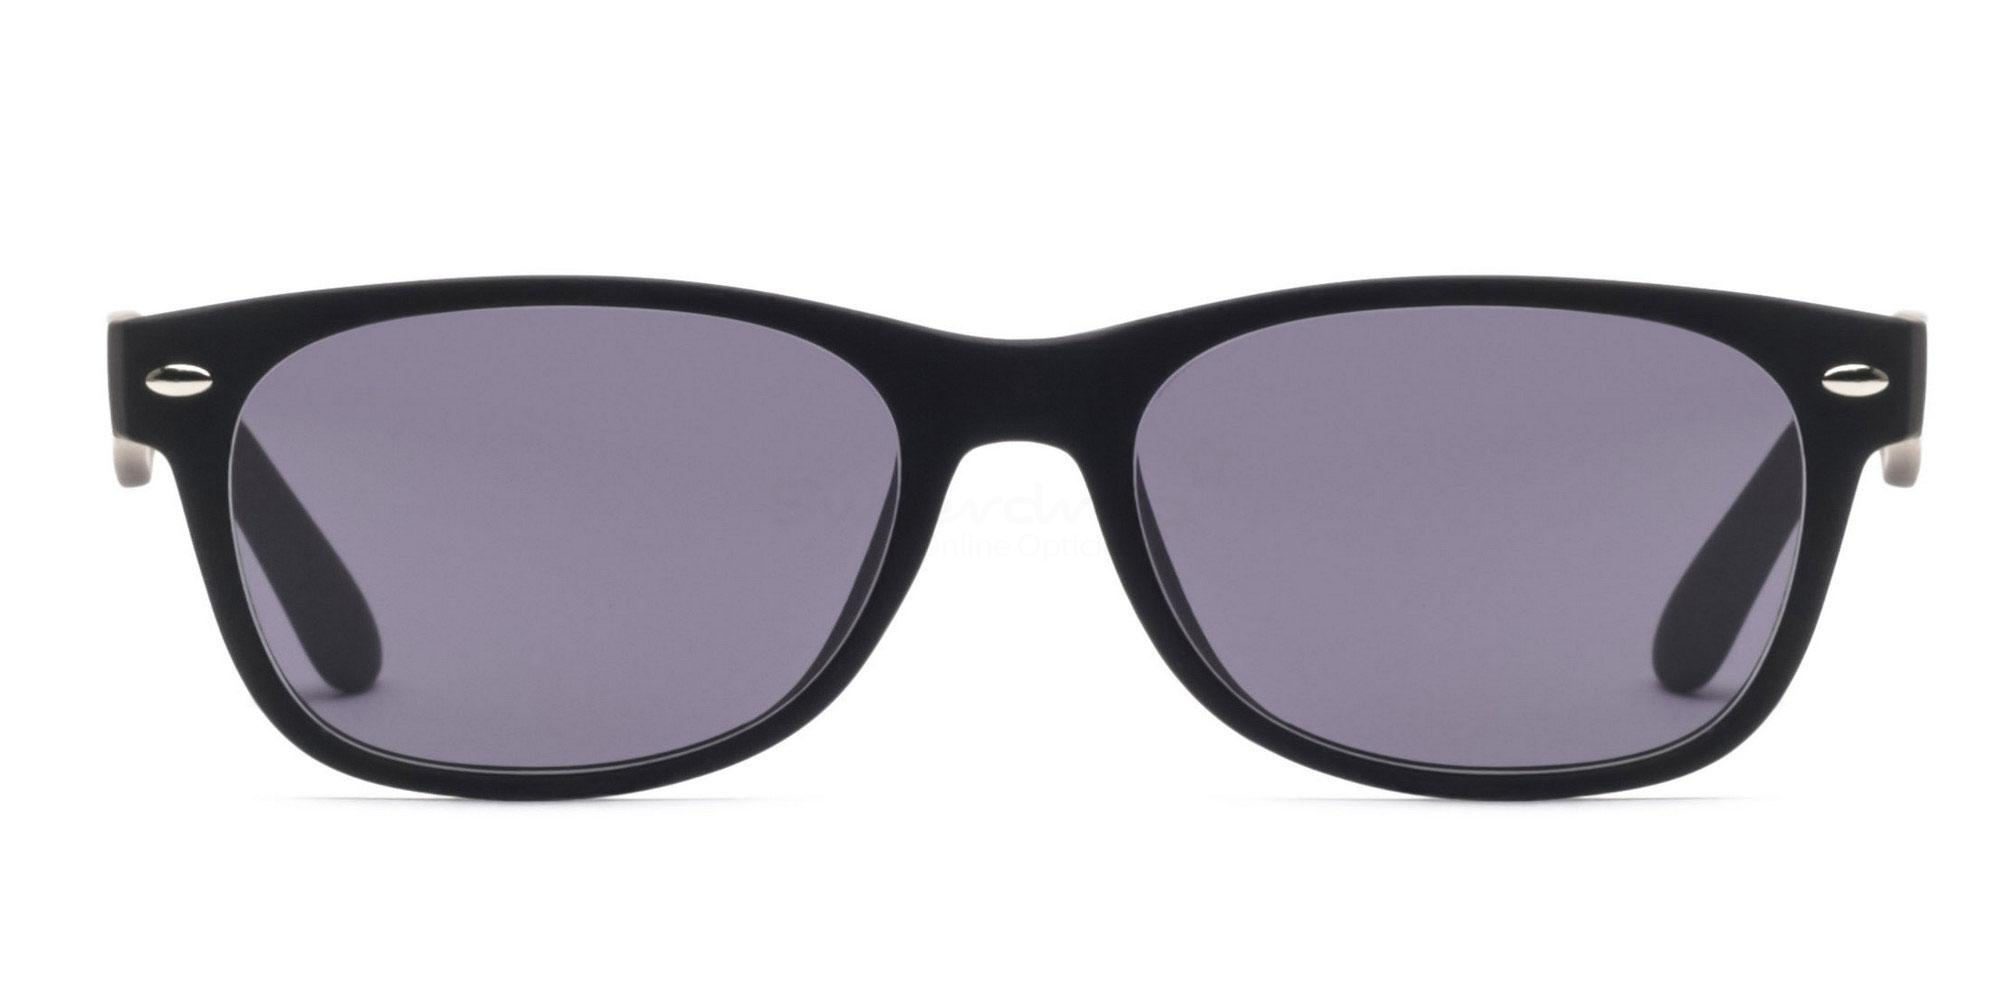 Black S8122 - Black (Sunglasses) Sunglasses, Helium